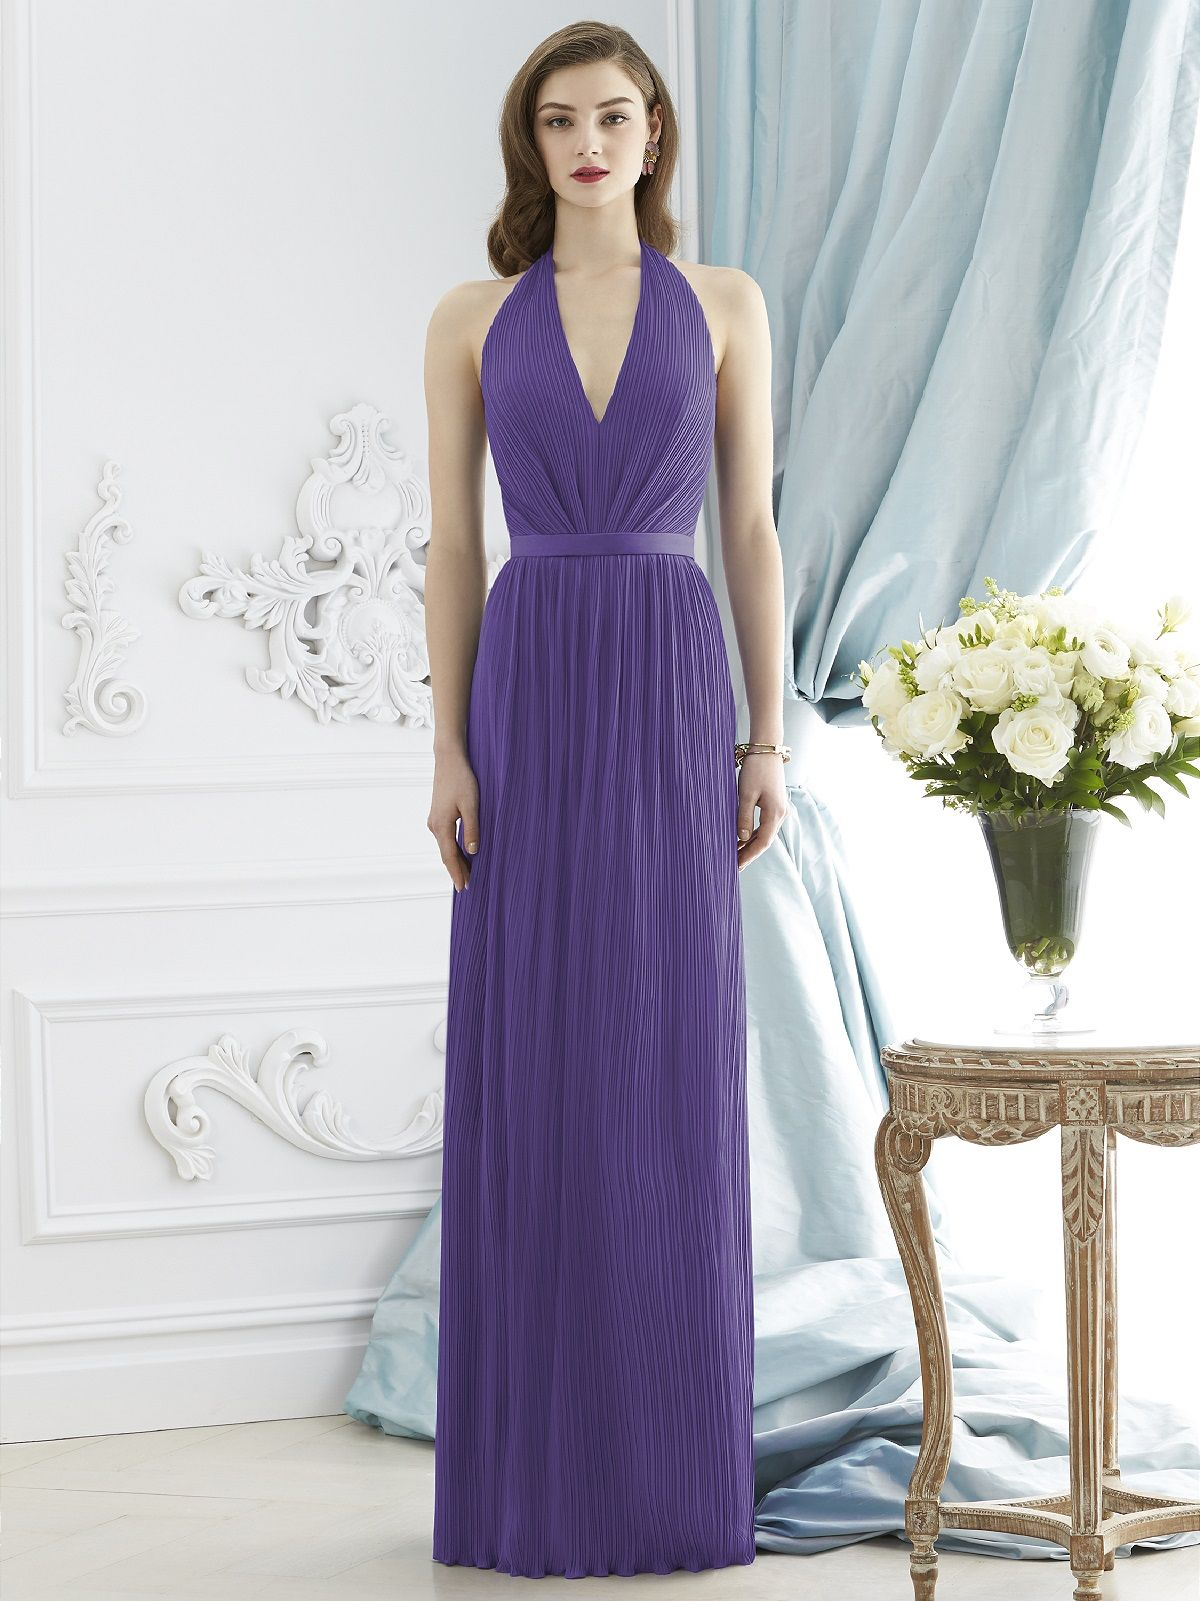 Dessy Collection Style 2941 #DessyGroup http://www.dessy.com/dresses ...